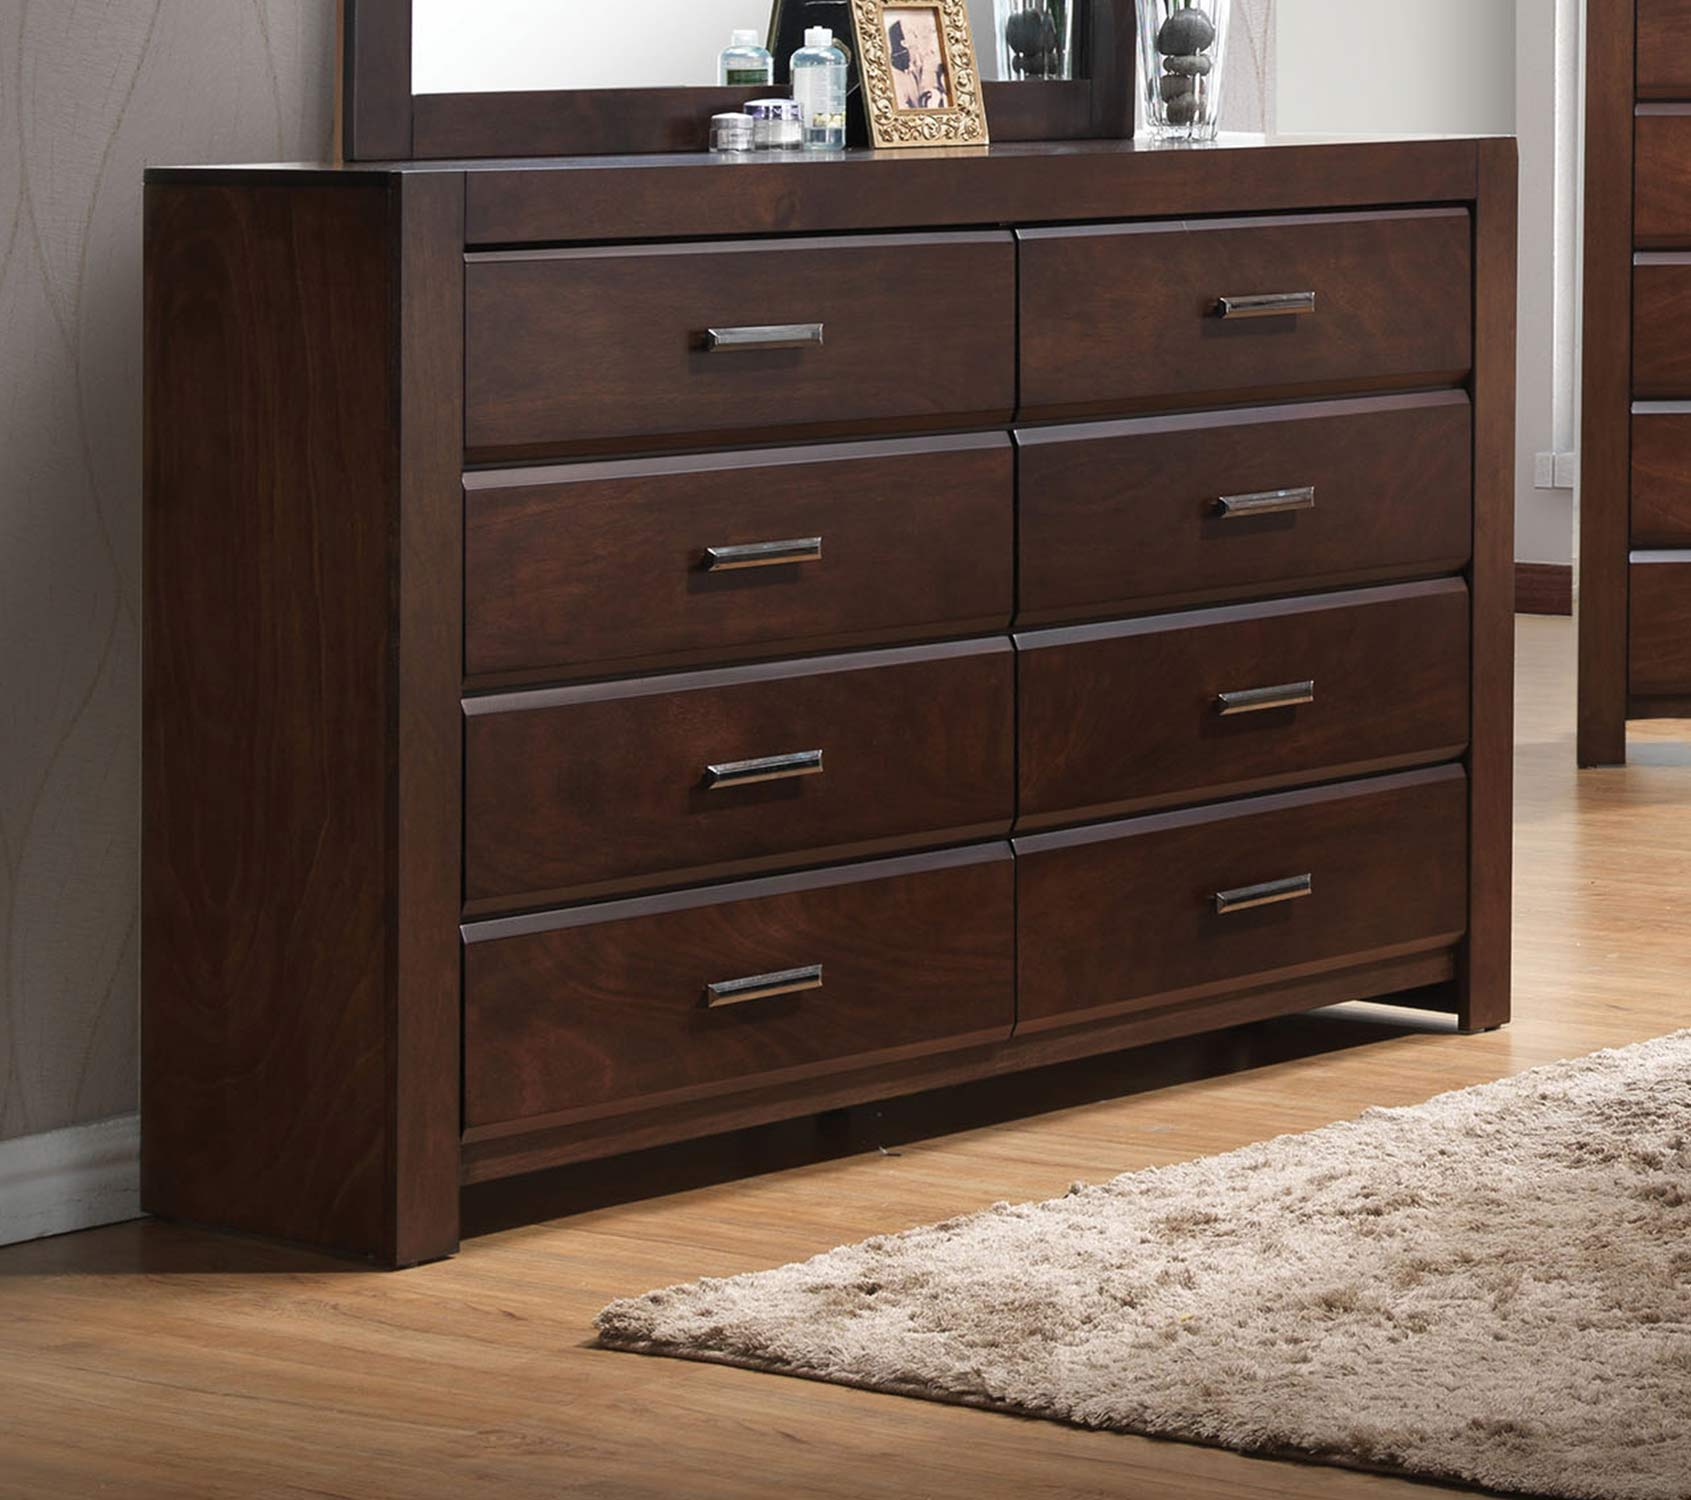 Acme Oberreit Dresser - Walnut